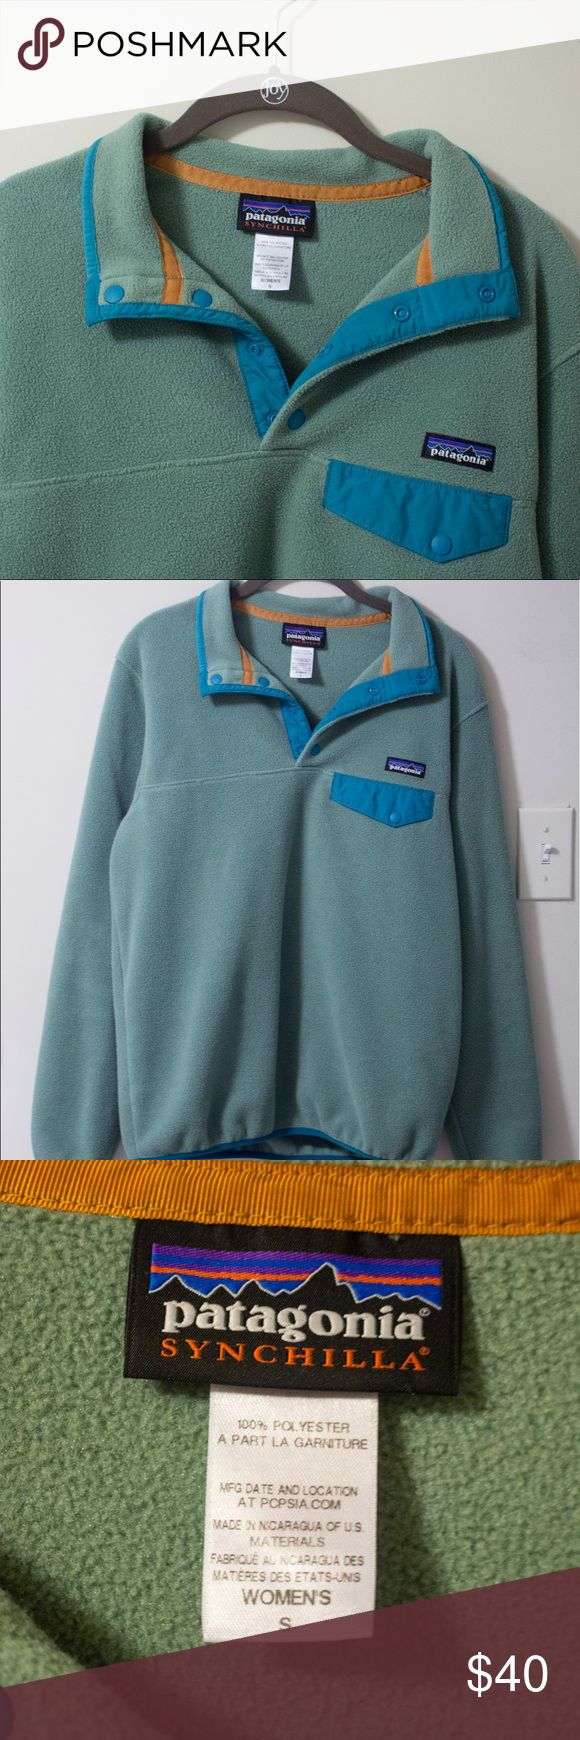 Patagonia Lightweight Synchilla Snap-T Pullover Small, light green fleece Patagonia pullover. Hardly worn, great condition. Patagonia Jackets & Coats